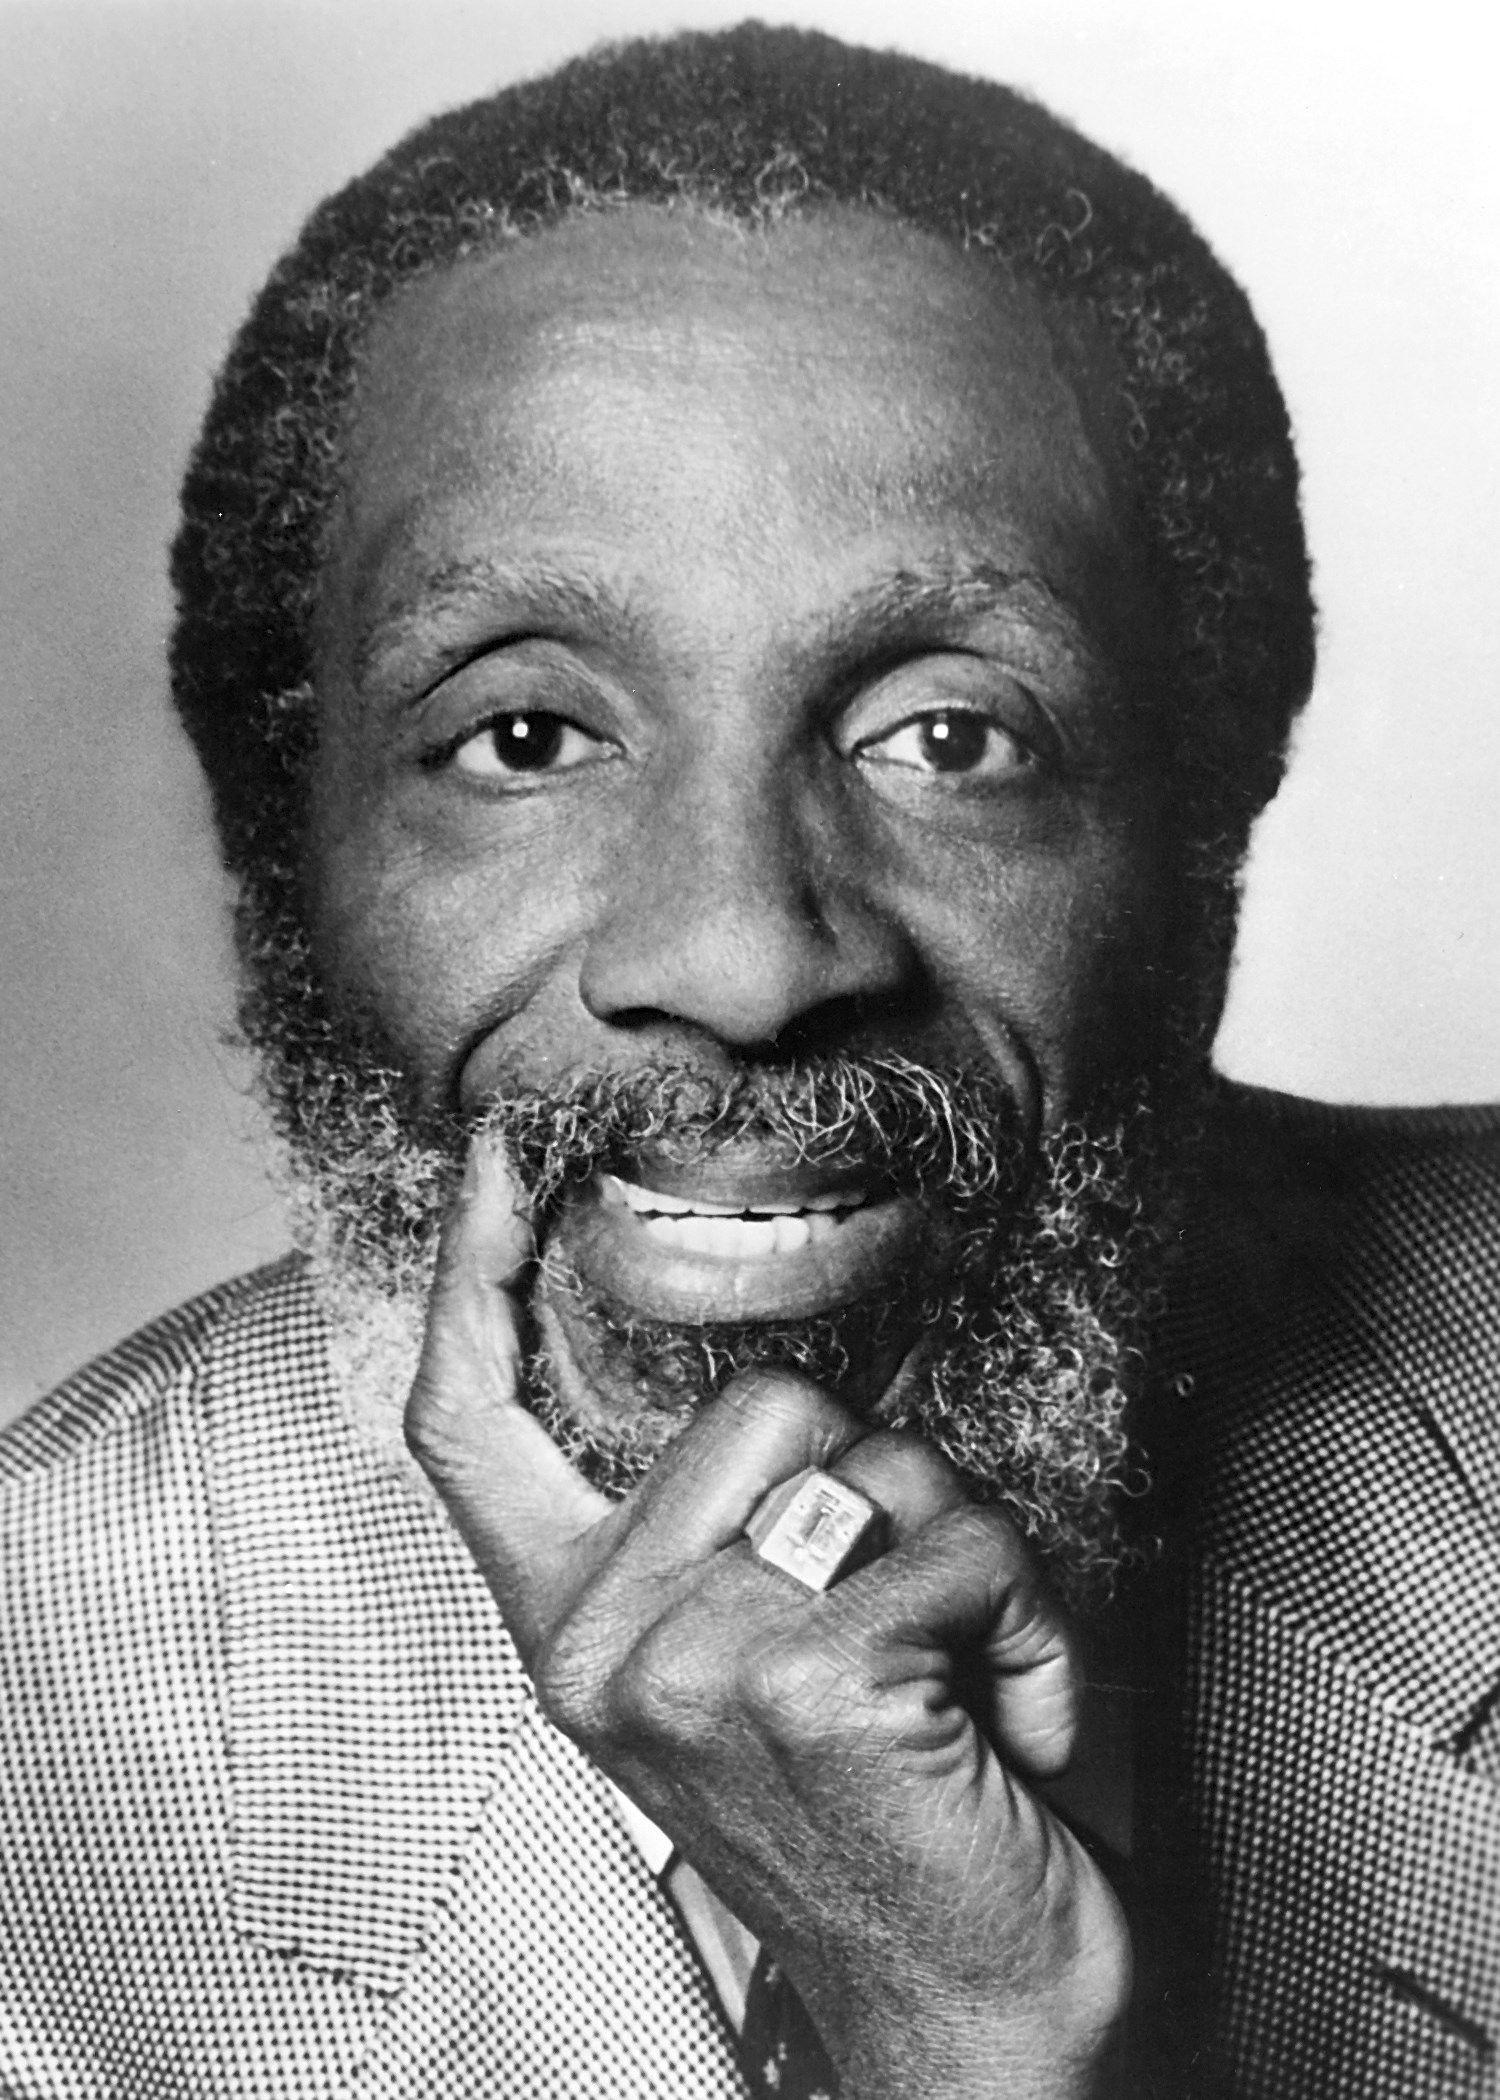 Dick Gregory, Groundbreaking Comedian And Activist Who Ran For Chicago Mayor, Dies